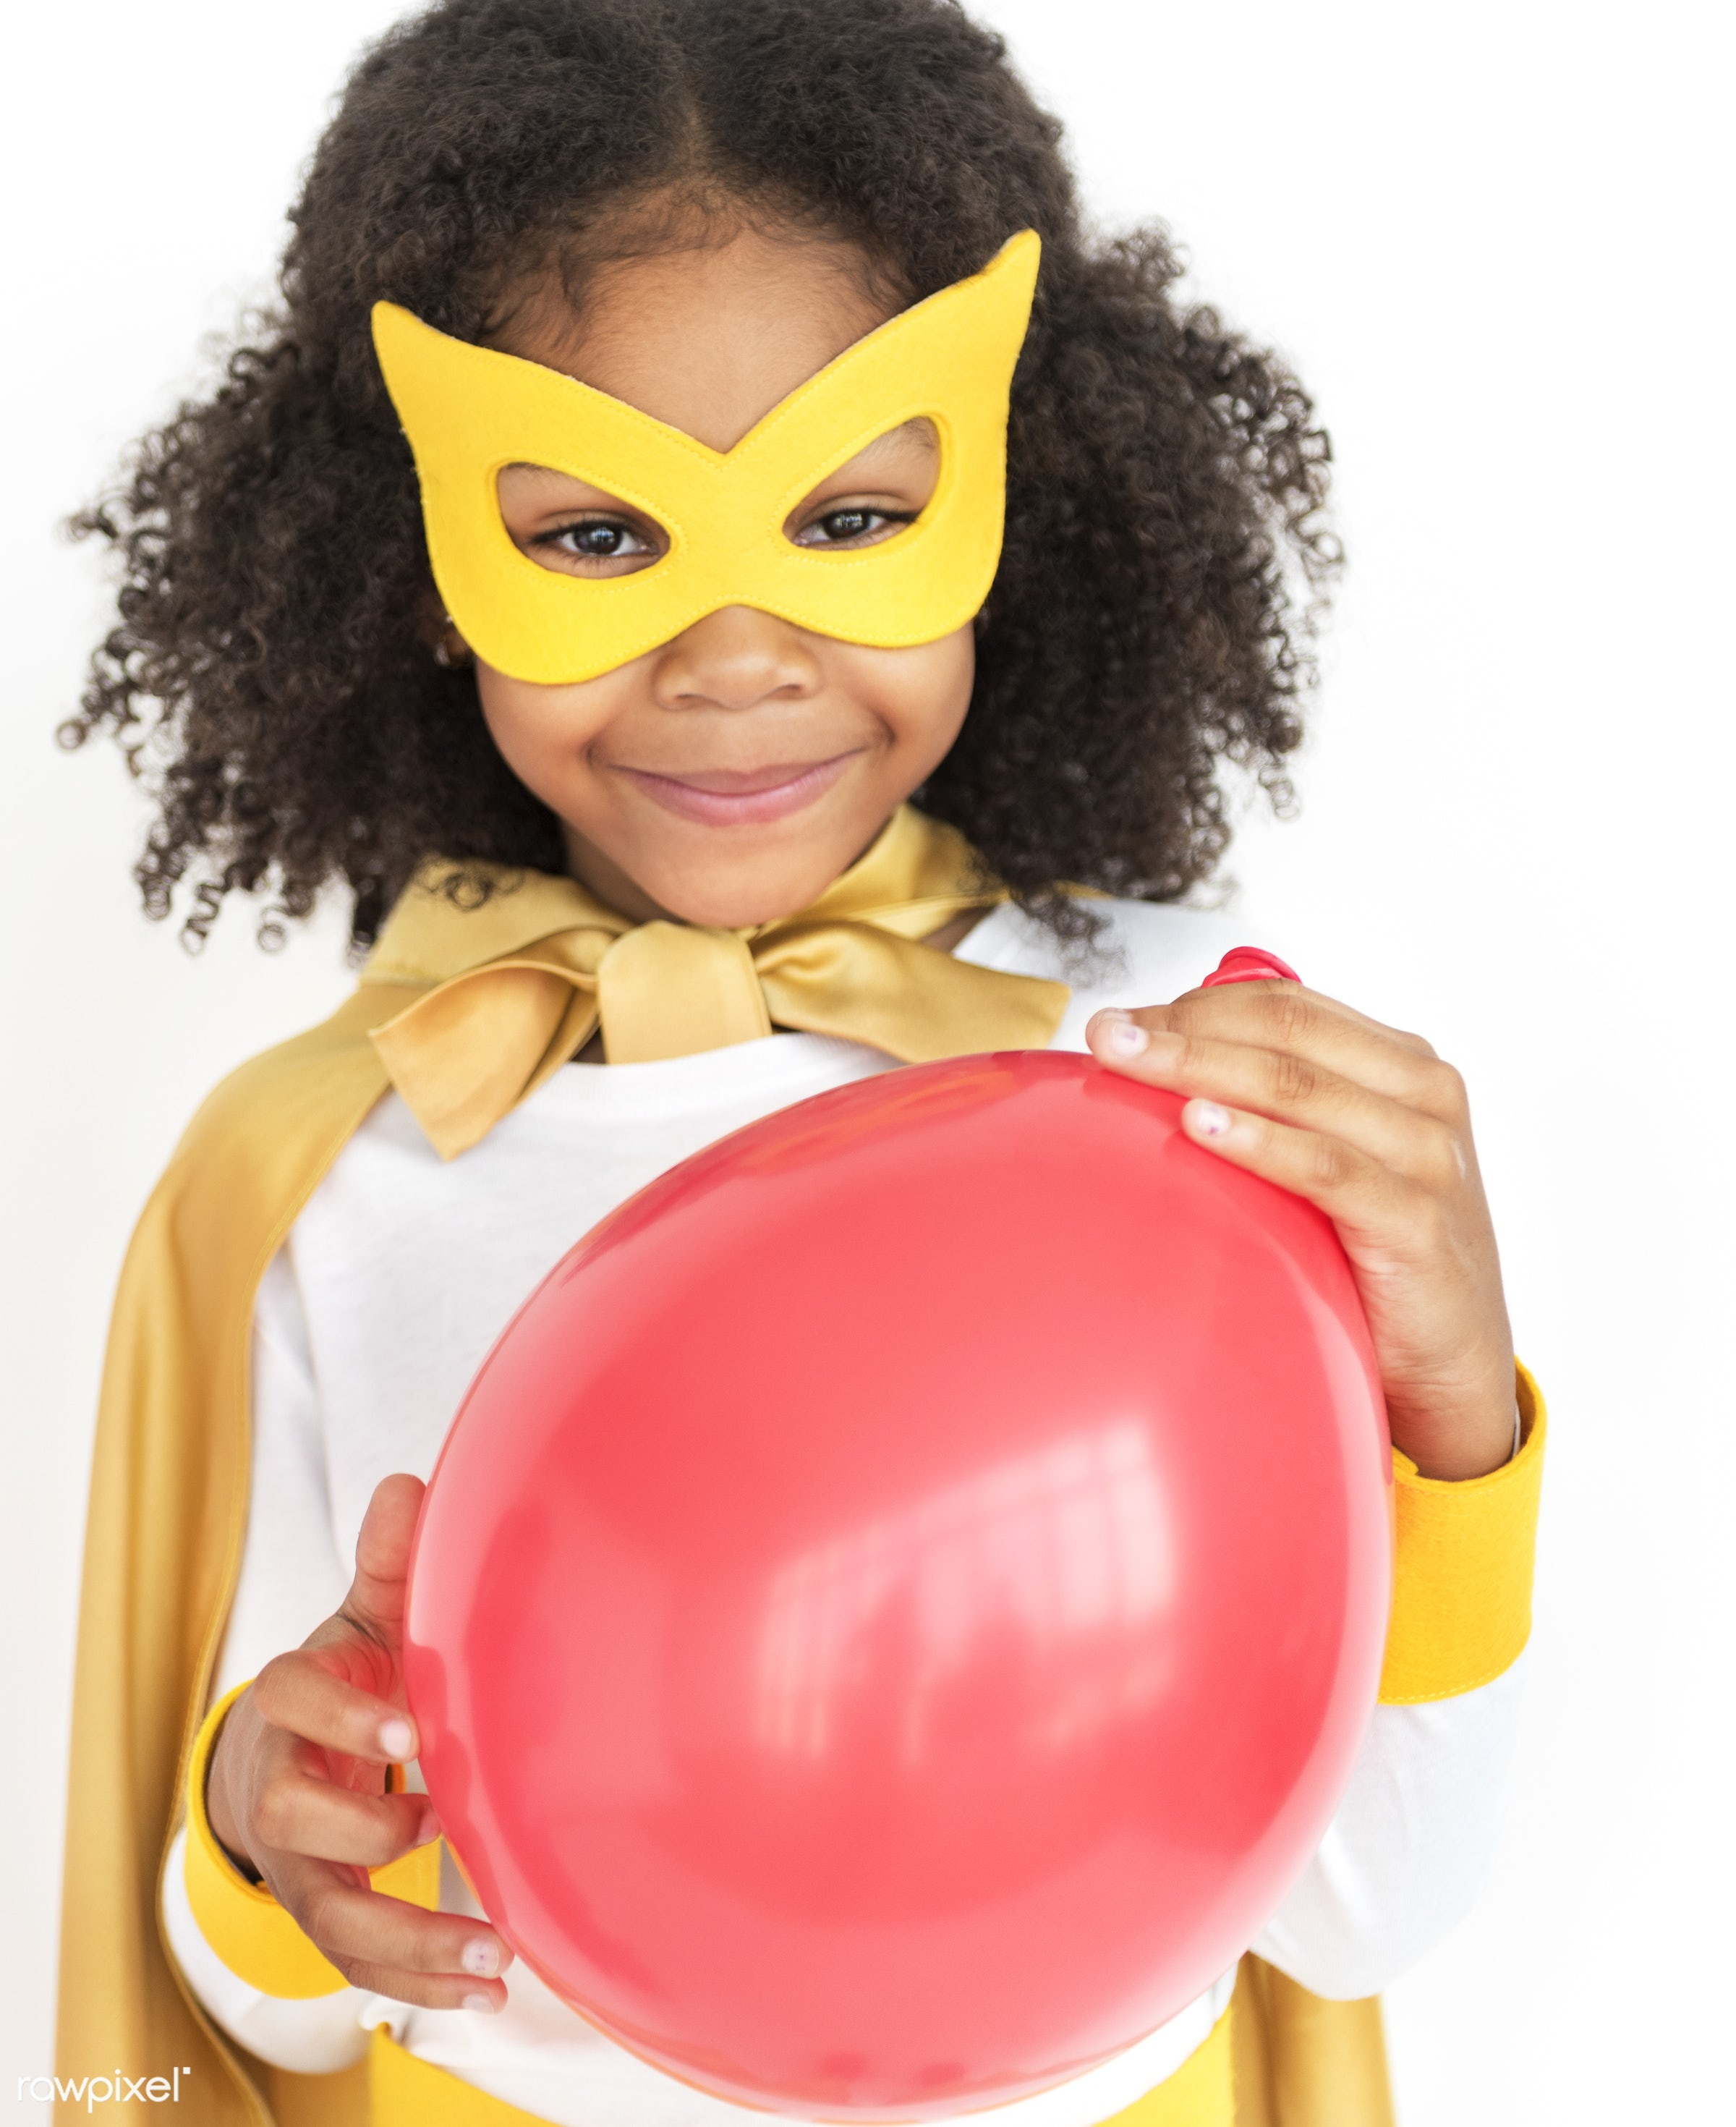 balloon, admiration, adolescence, be strong, bold, brave, capable, child, childhood, children, courageous, daring, expertise...